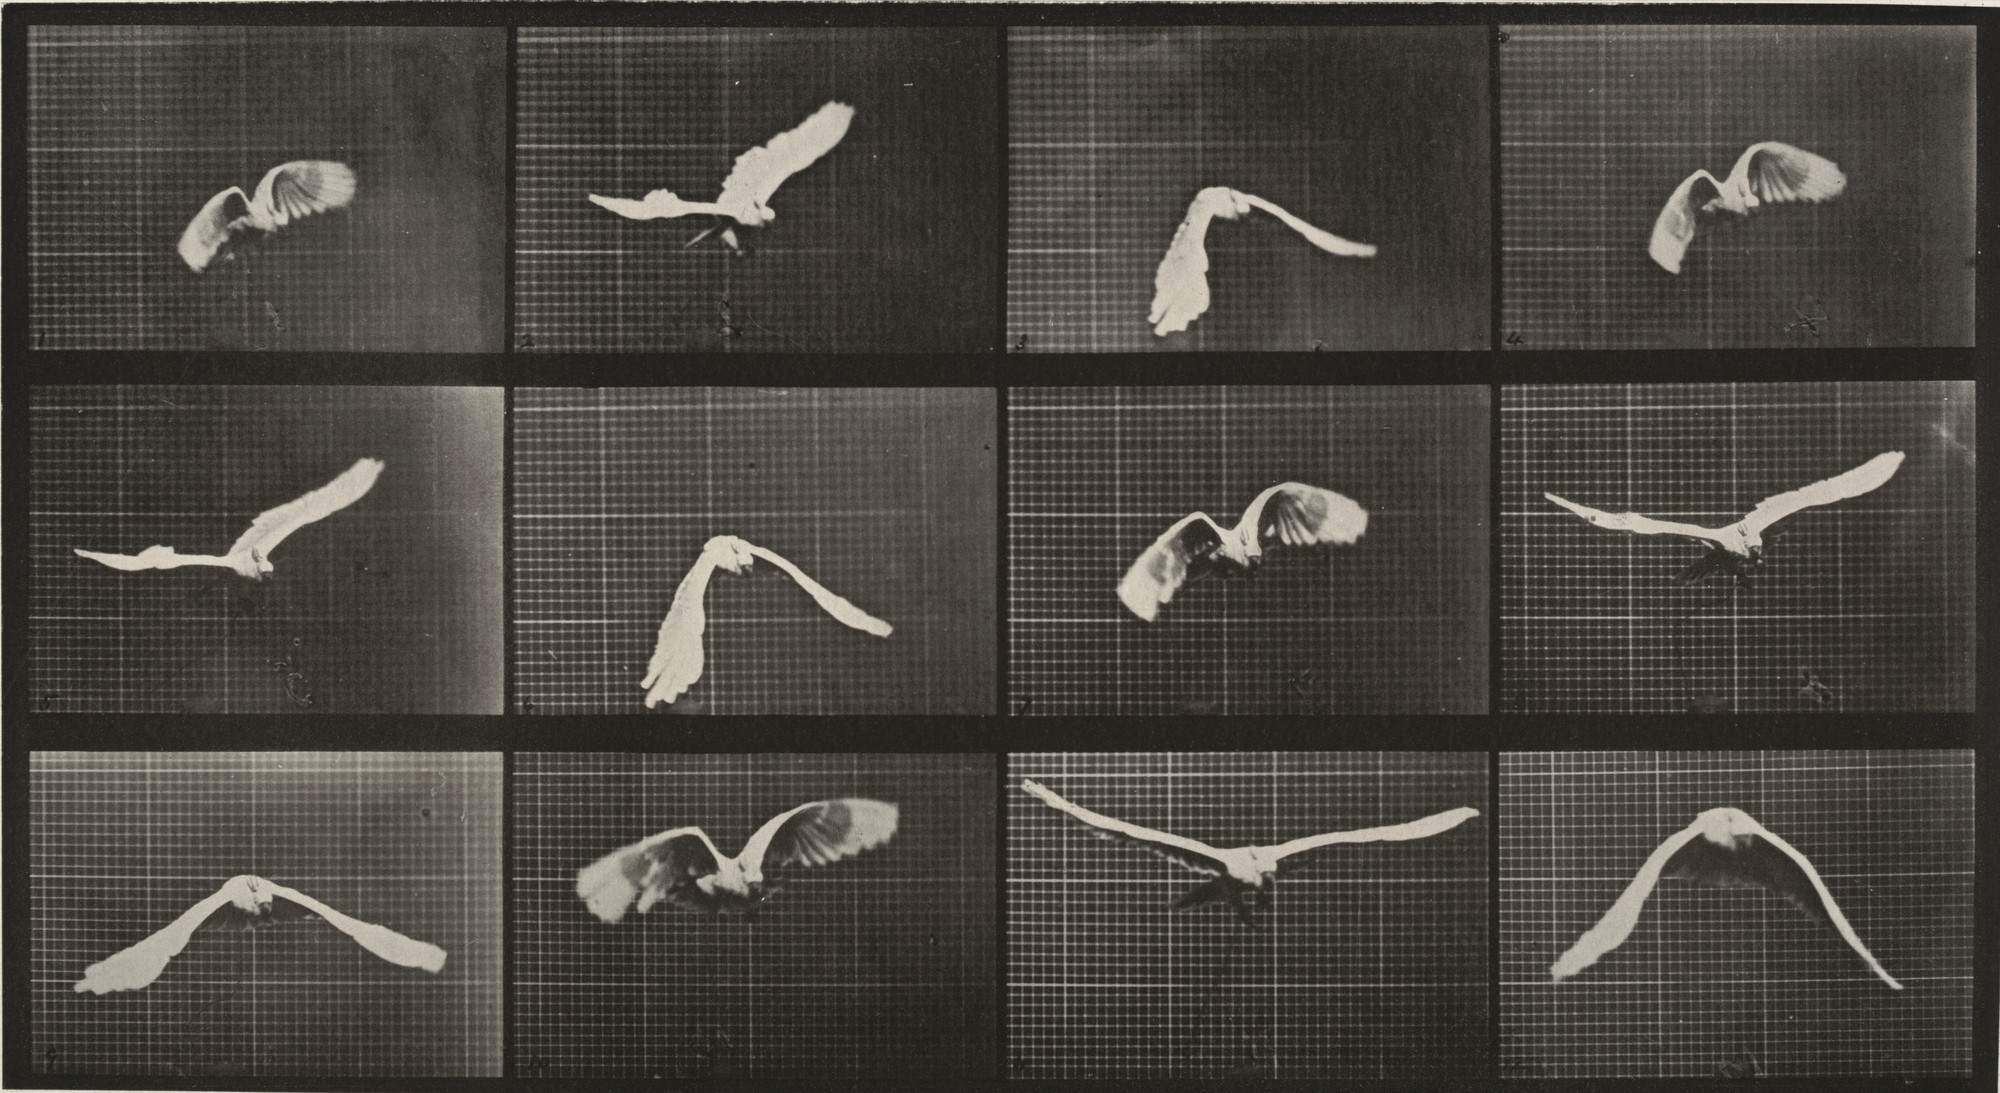 Eadweard J. Muybridge. Cockatoo Flying: Plate 762 from Animal Locomotion. 1884-86